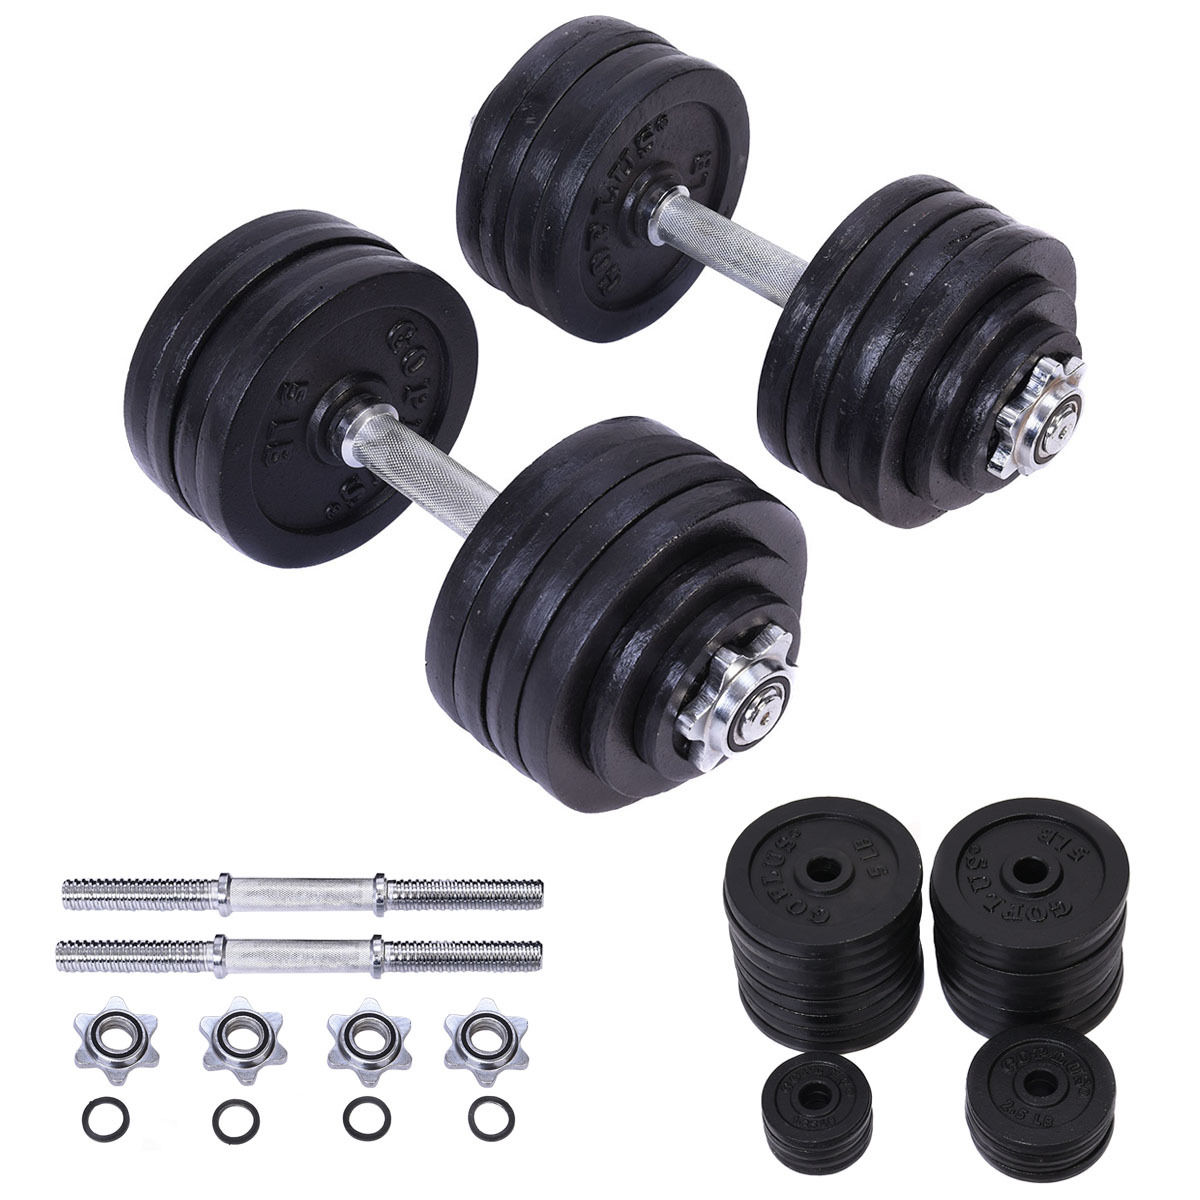 Costway 2 x 52.5 LB Weight Dumbbell Set Adjustable Cap Gym Barbell Plates Body Workout